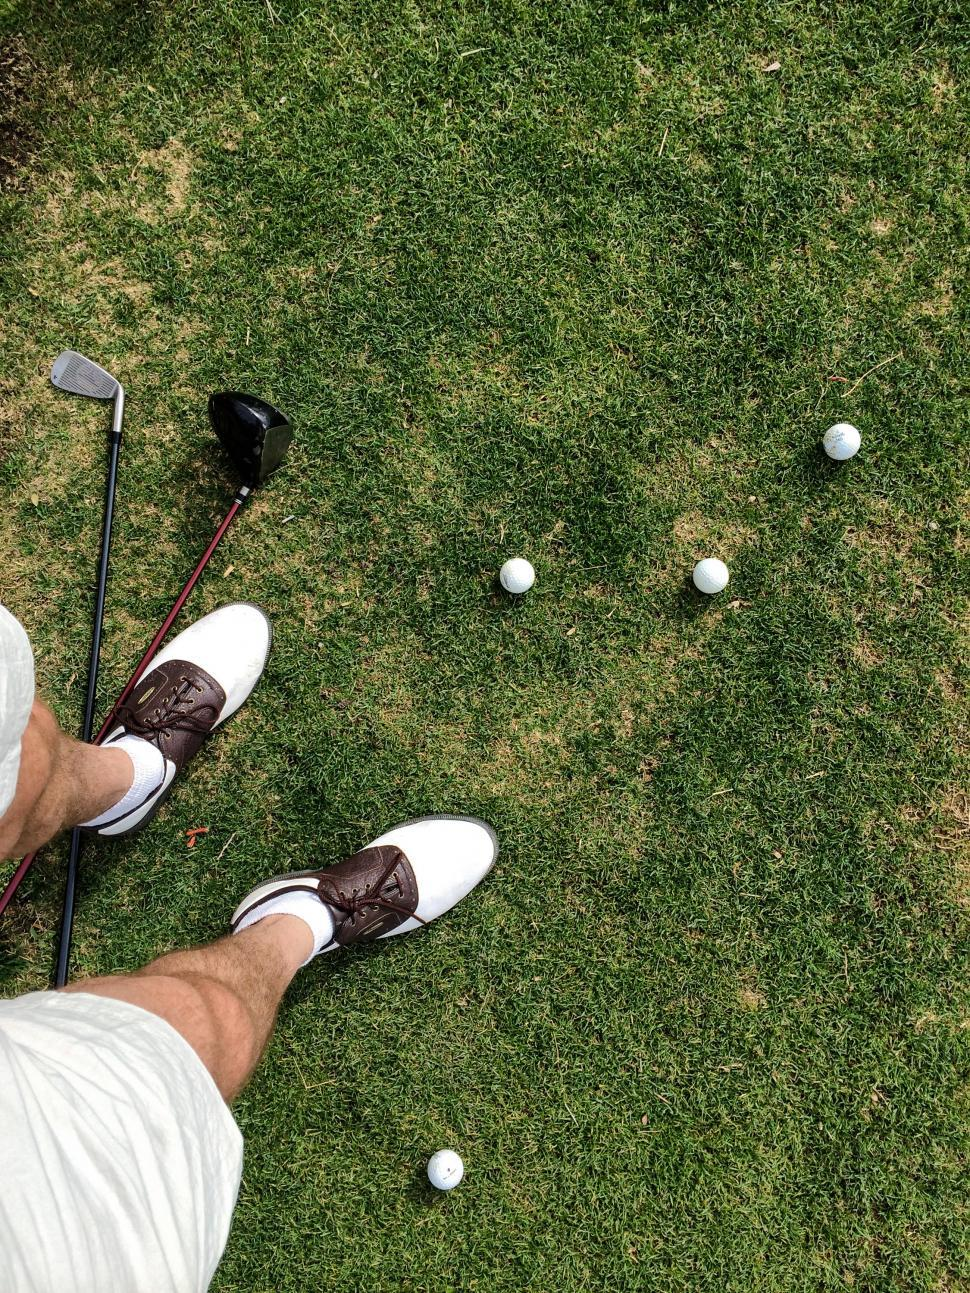 Download Free Stock HD Photo of Practicing on Golf Course Online